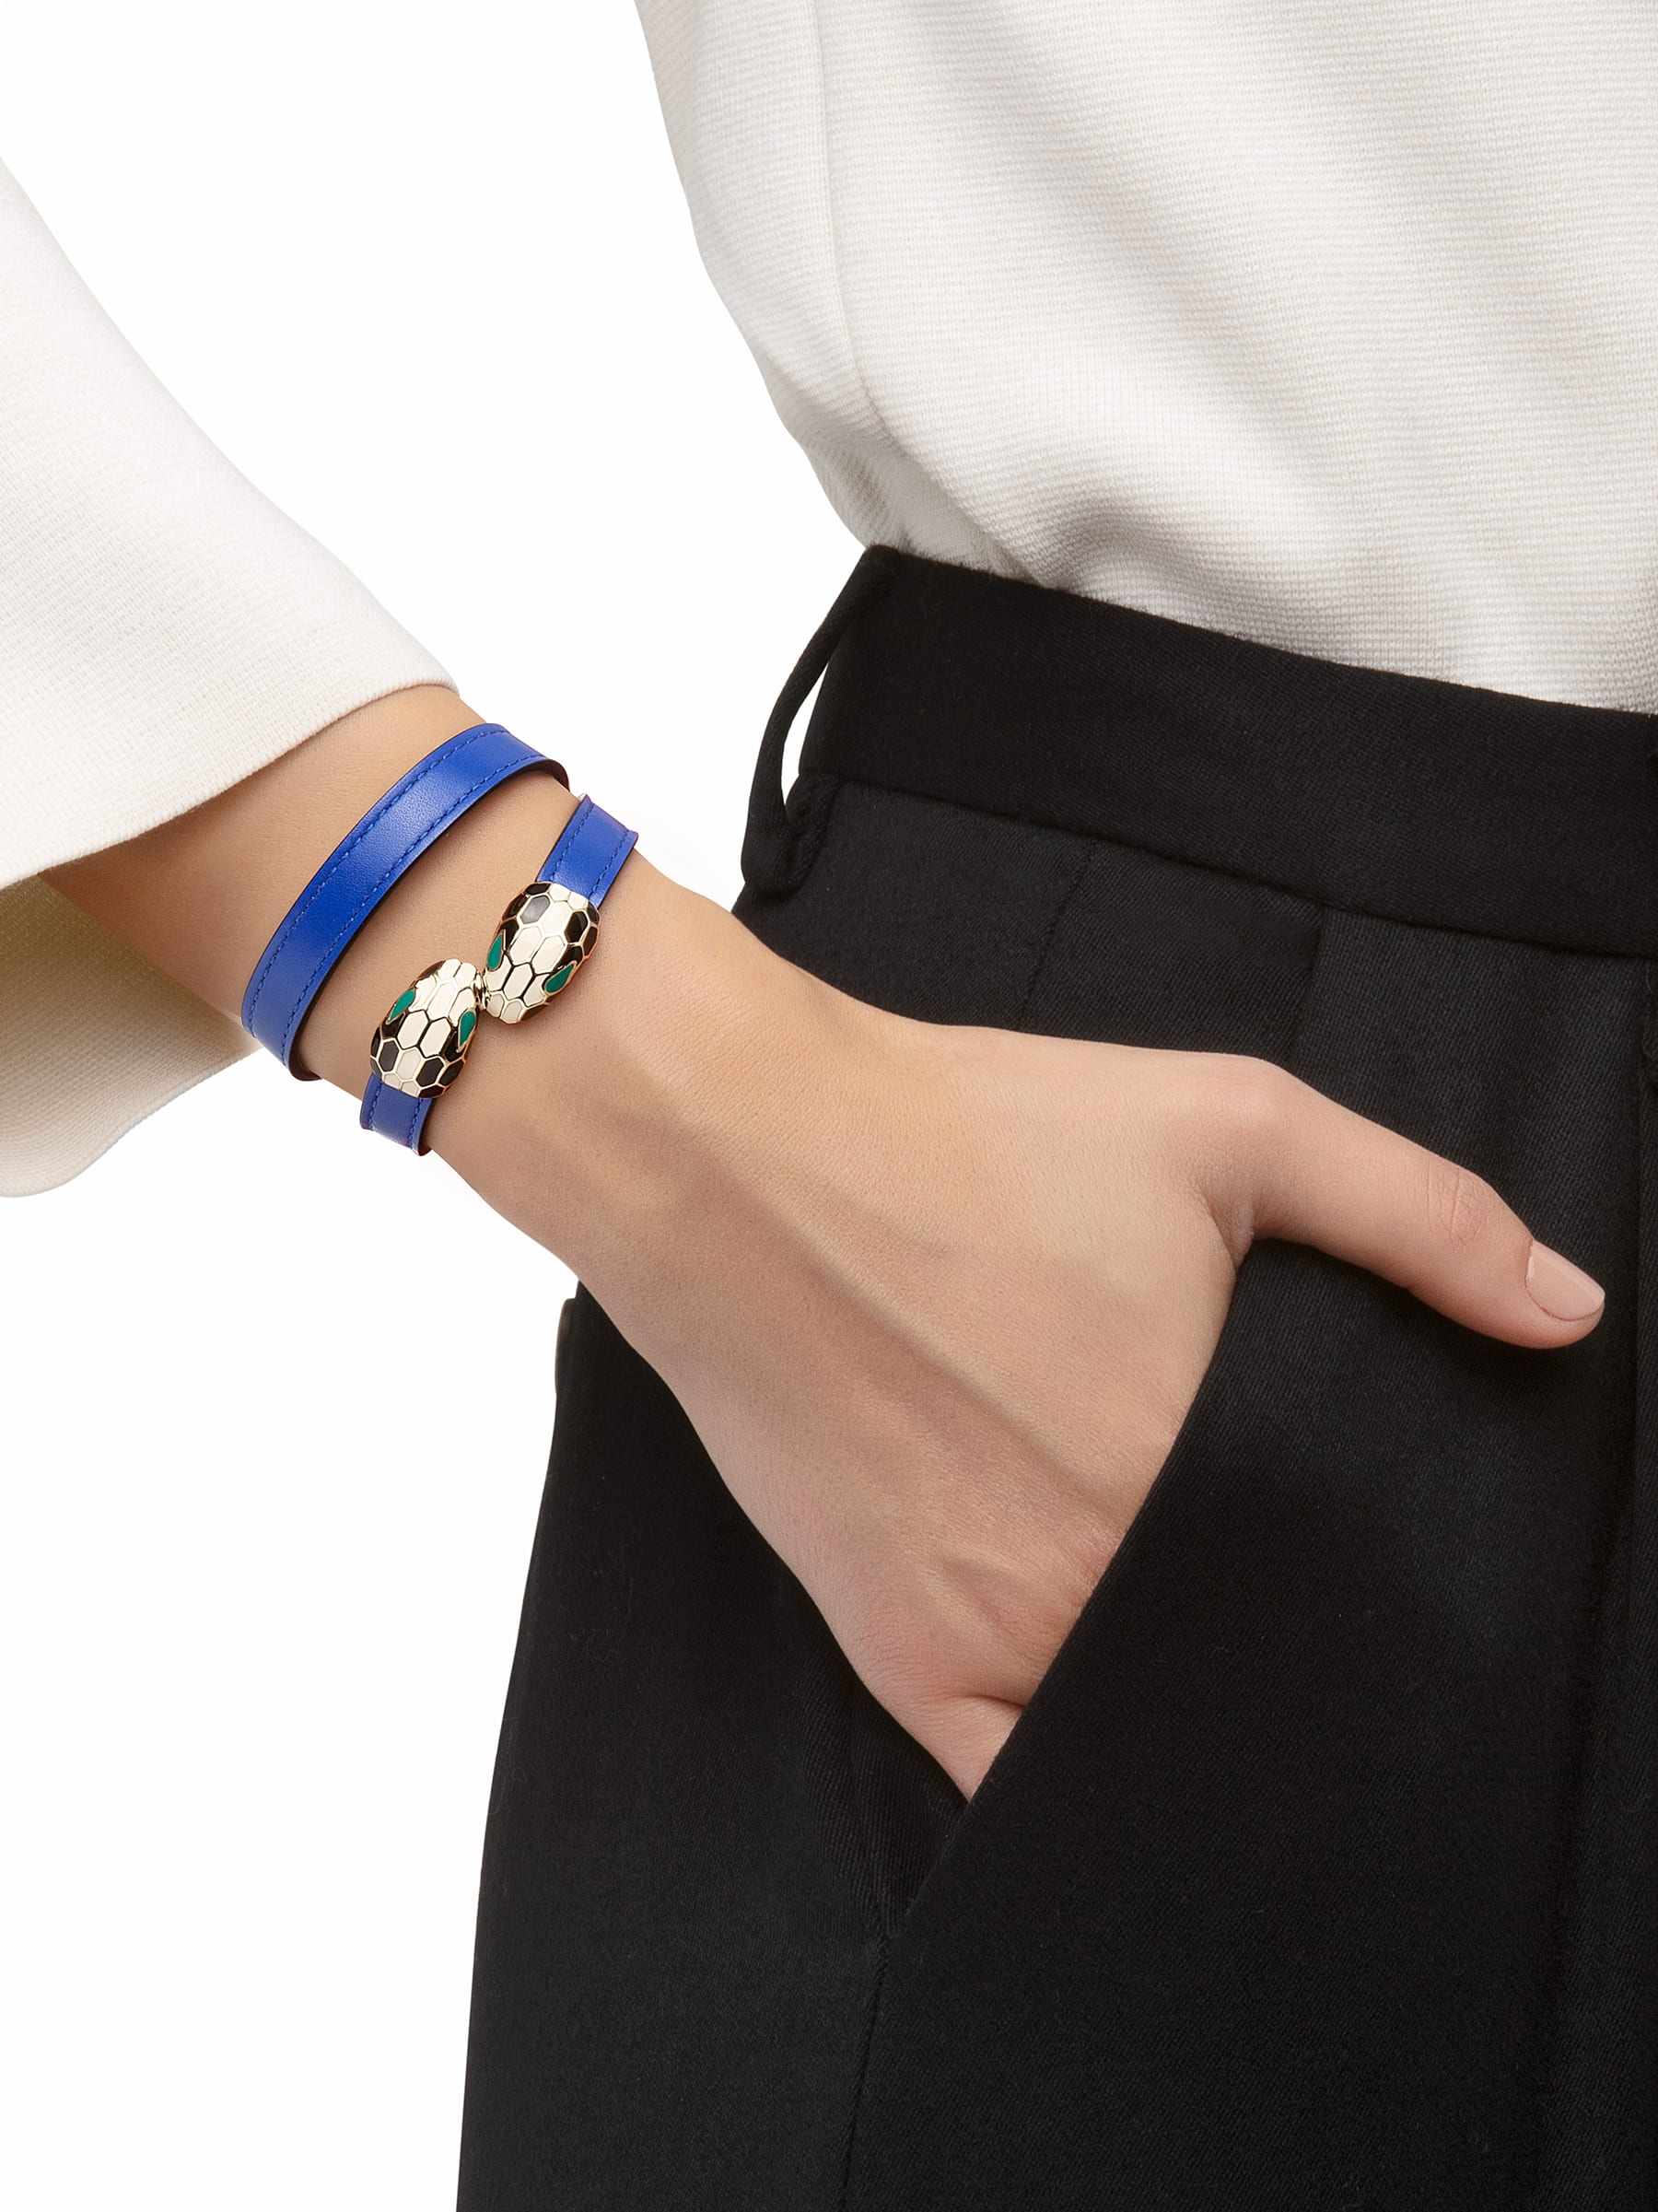 Serpenti Forever multi-coiled bracelet in cobalt tourmaline calf leather, with brass light gold plated hardware. Iconic contraire snakehead décor in black and white enamel, with green enamel eyes MCSerp-CL-CT image 2